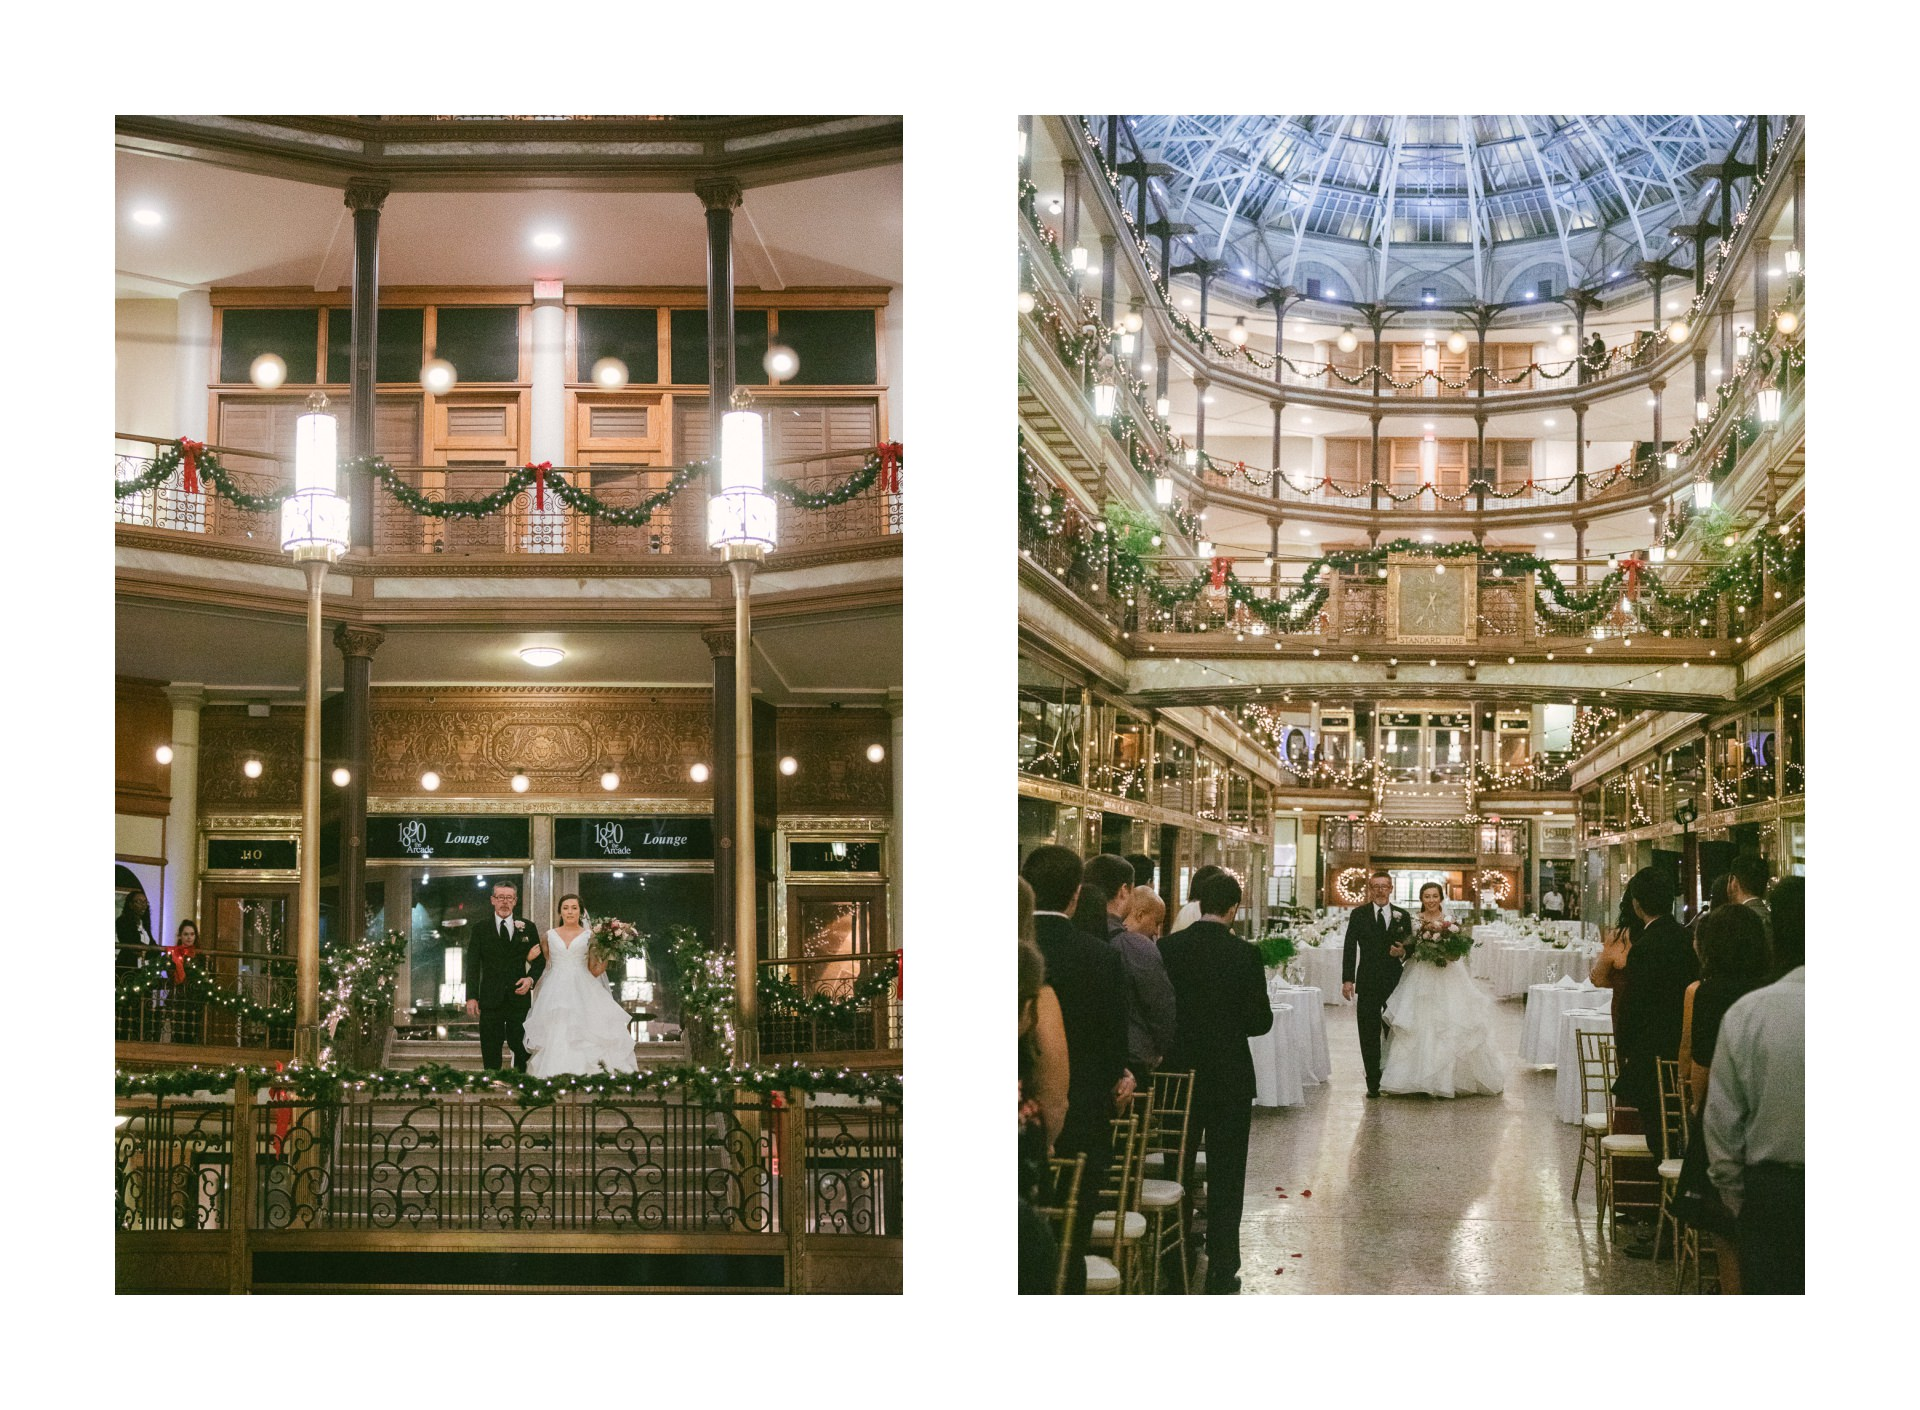 Hyatt Old Arcade Wedding Photographer in Cleveland 1 48.jpg